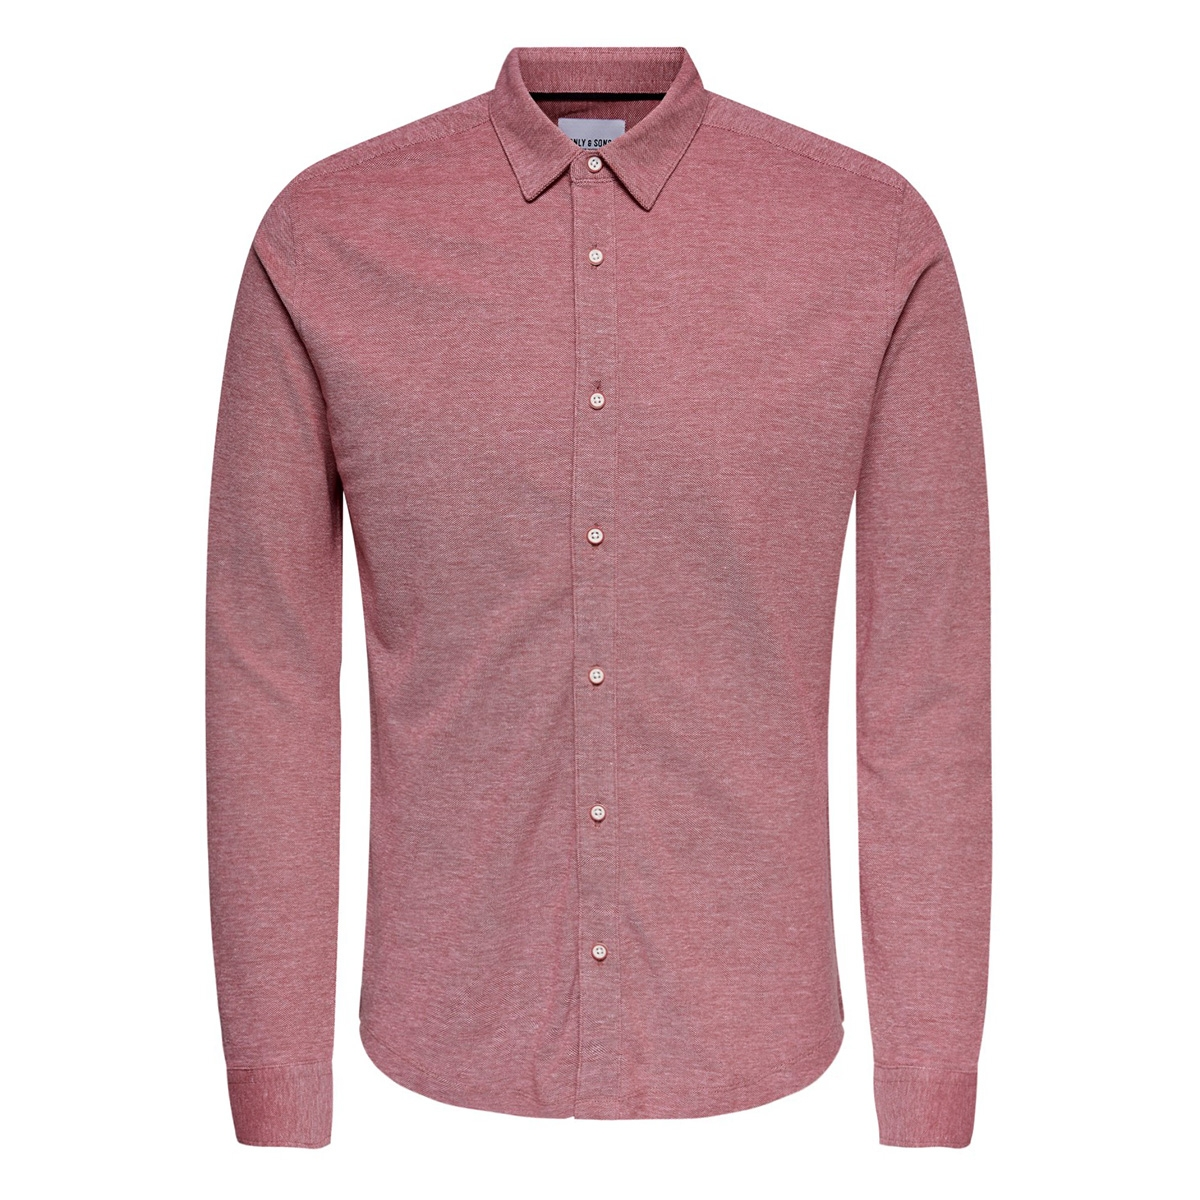 onscuton ls knitted melange shirt re 22009904 only & sons overhemd pompeian red